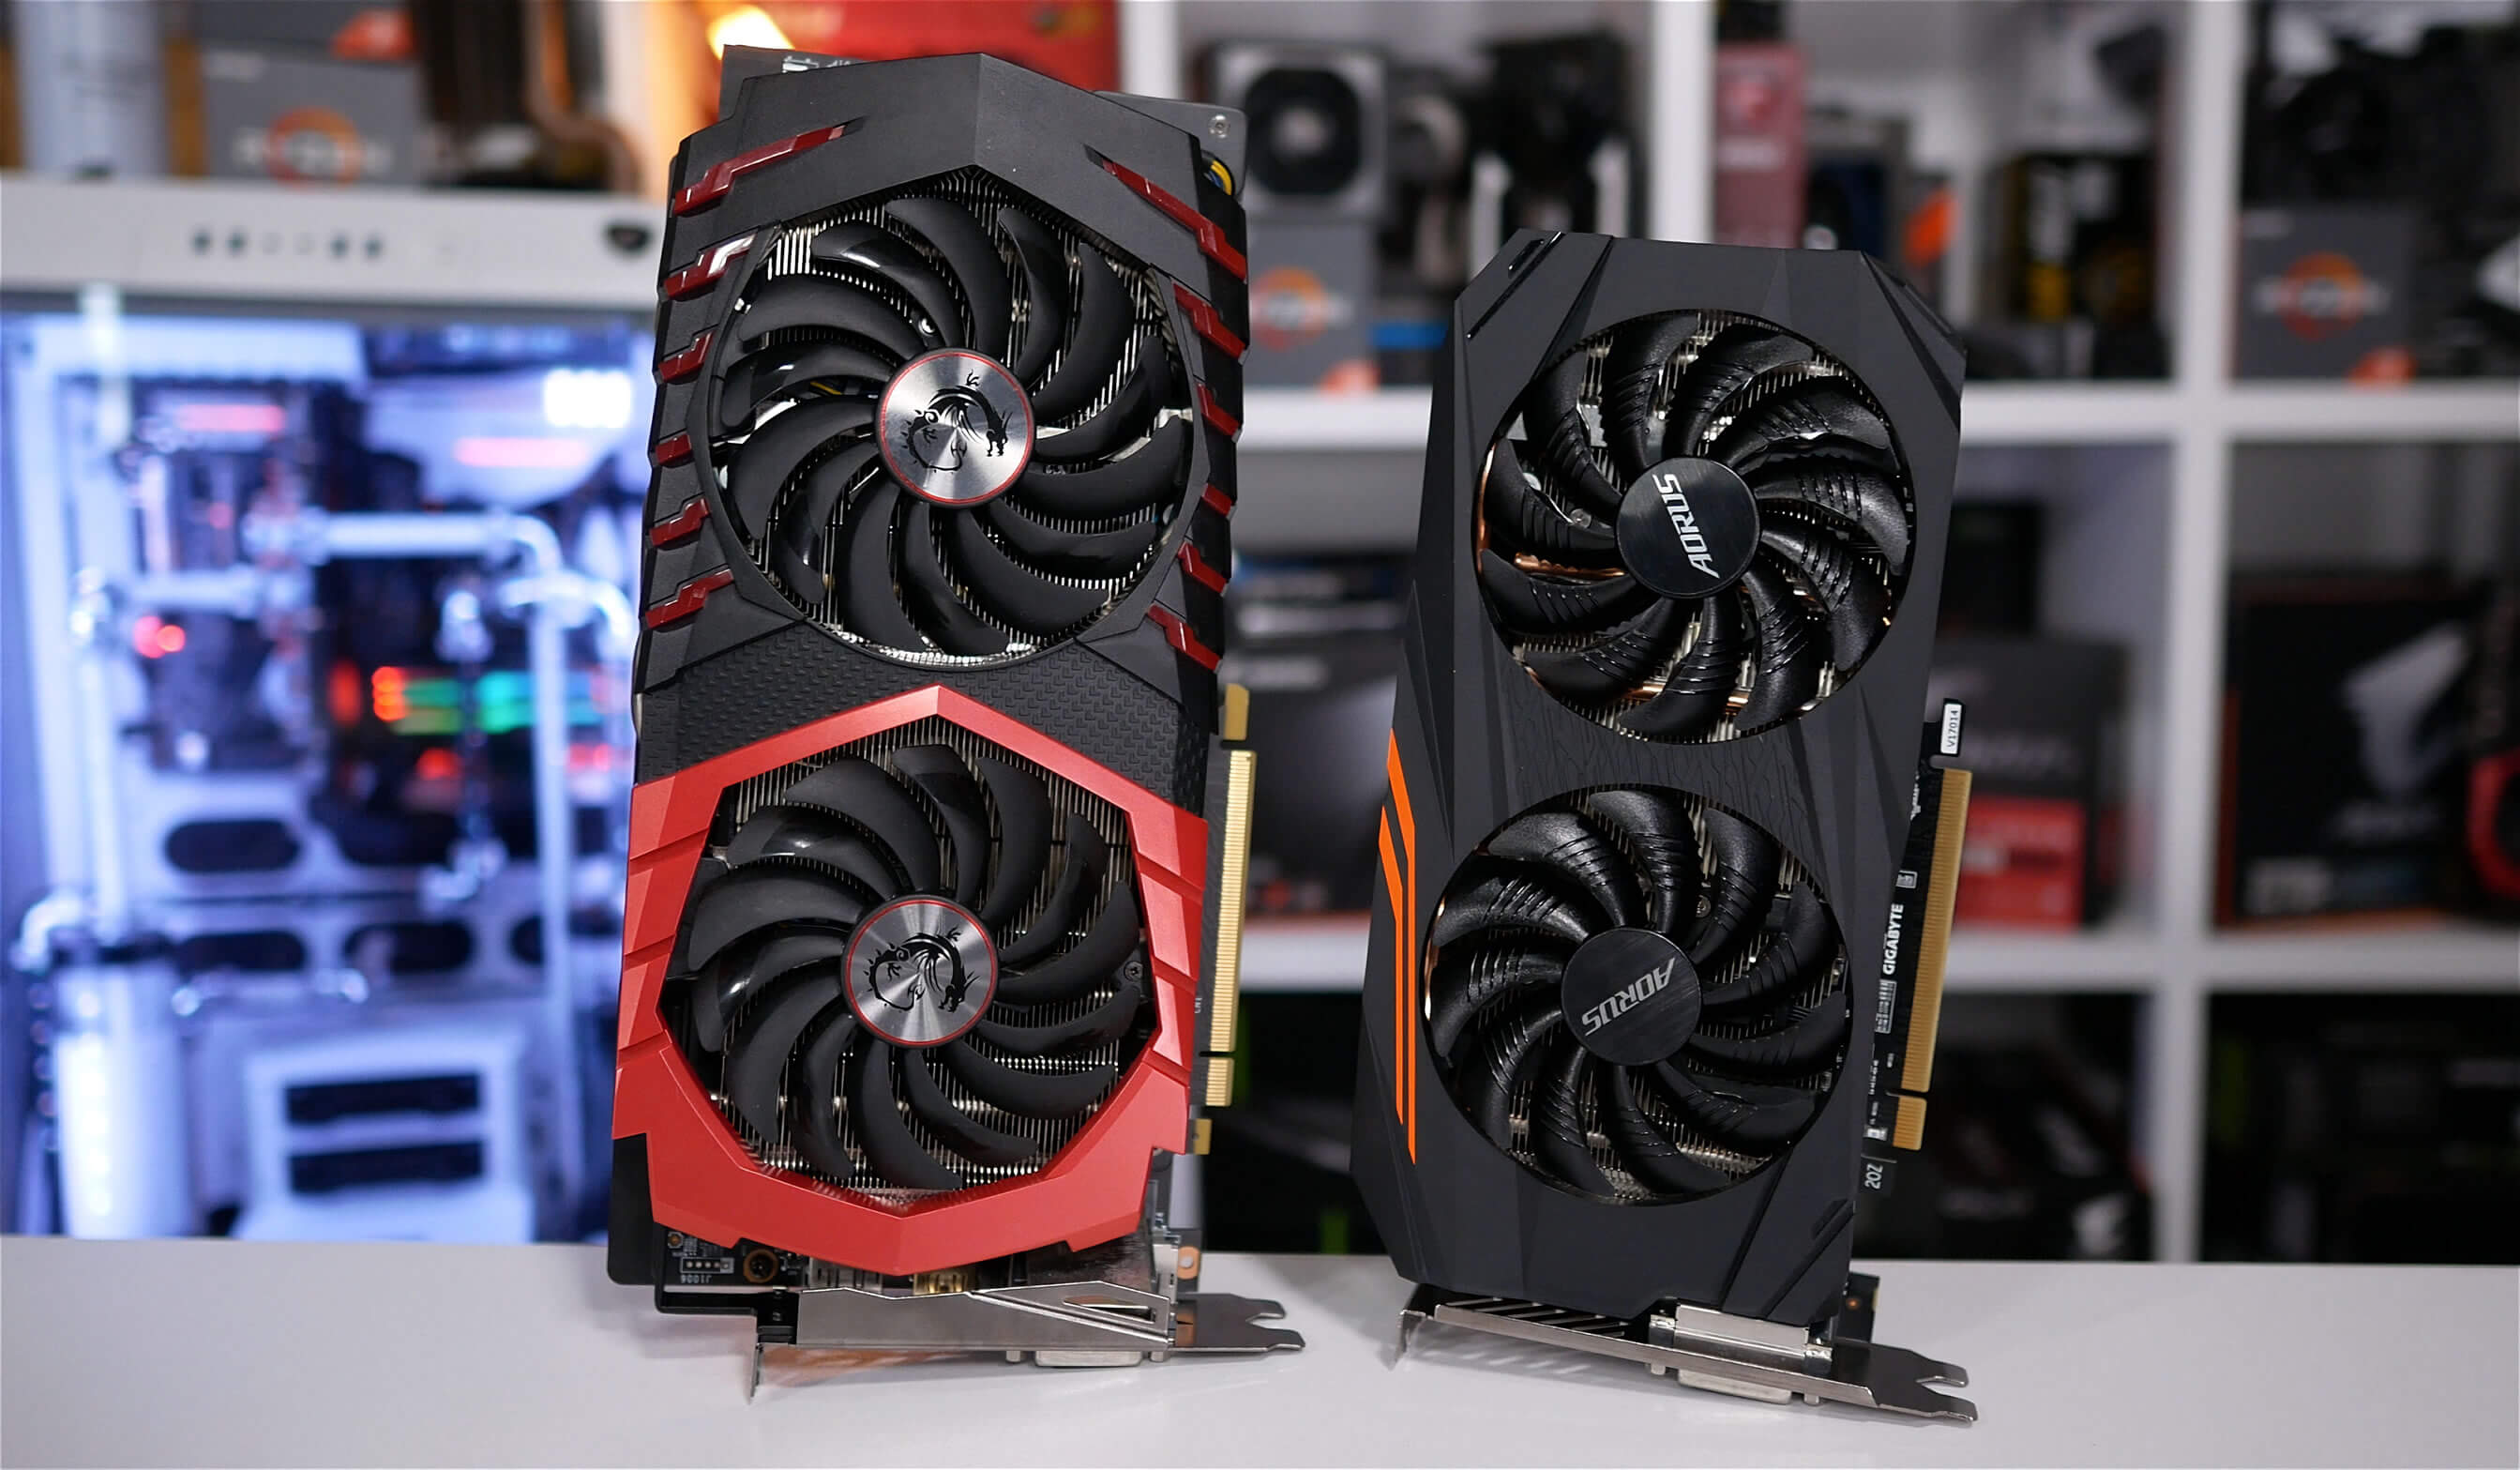 Radeon RX 570 vs  RX 580 vs  GeForce GTX 1060 3GB vs  GTX